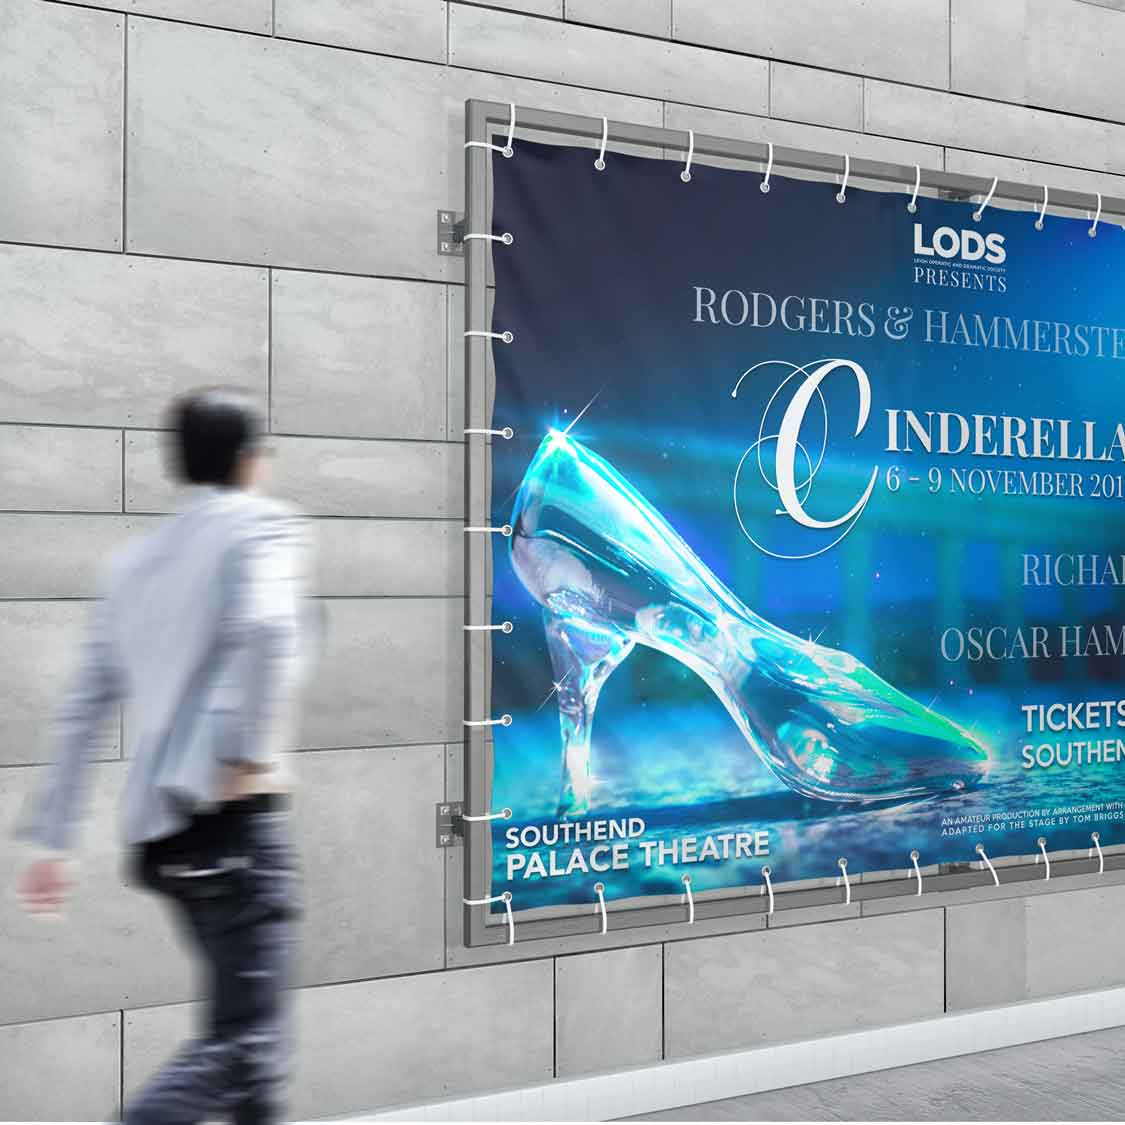 theatre publicity ideas cinderalla banner 2 the musical lods leigh operatic and dramatic society author studios